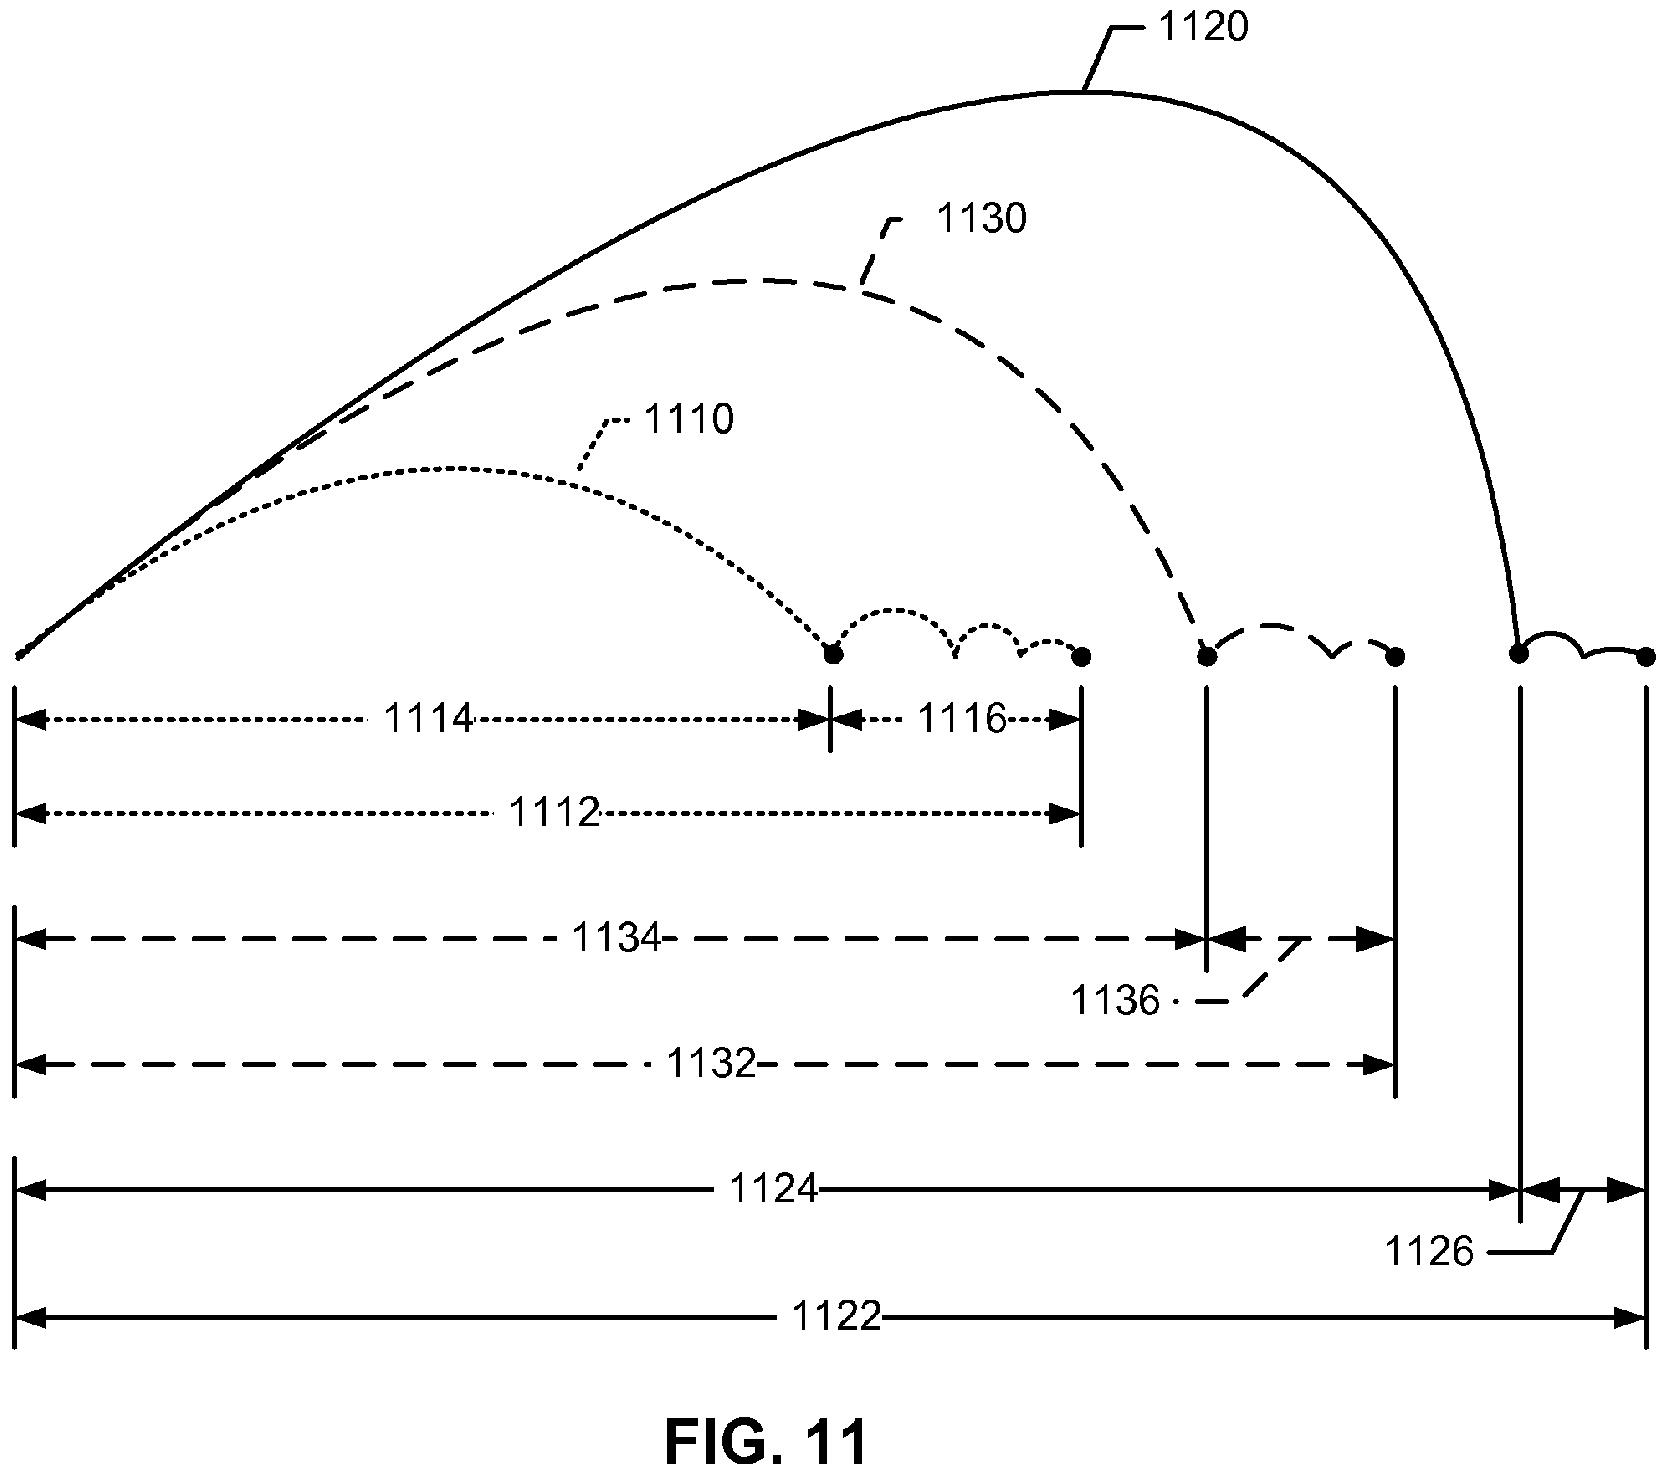 hight resolution of  0013 the ball flight trajectories 1110 1120 and 1130 may be associated with an individual who generally produces relatively less spin on a golf ball